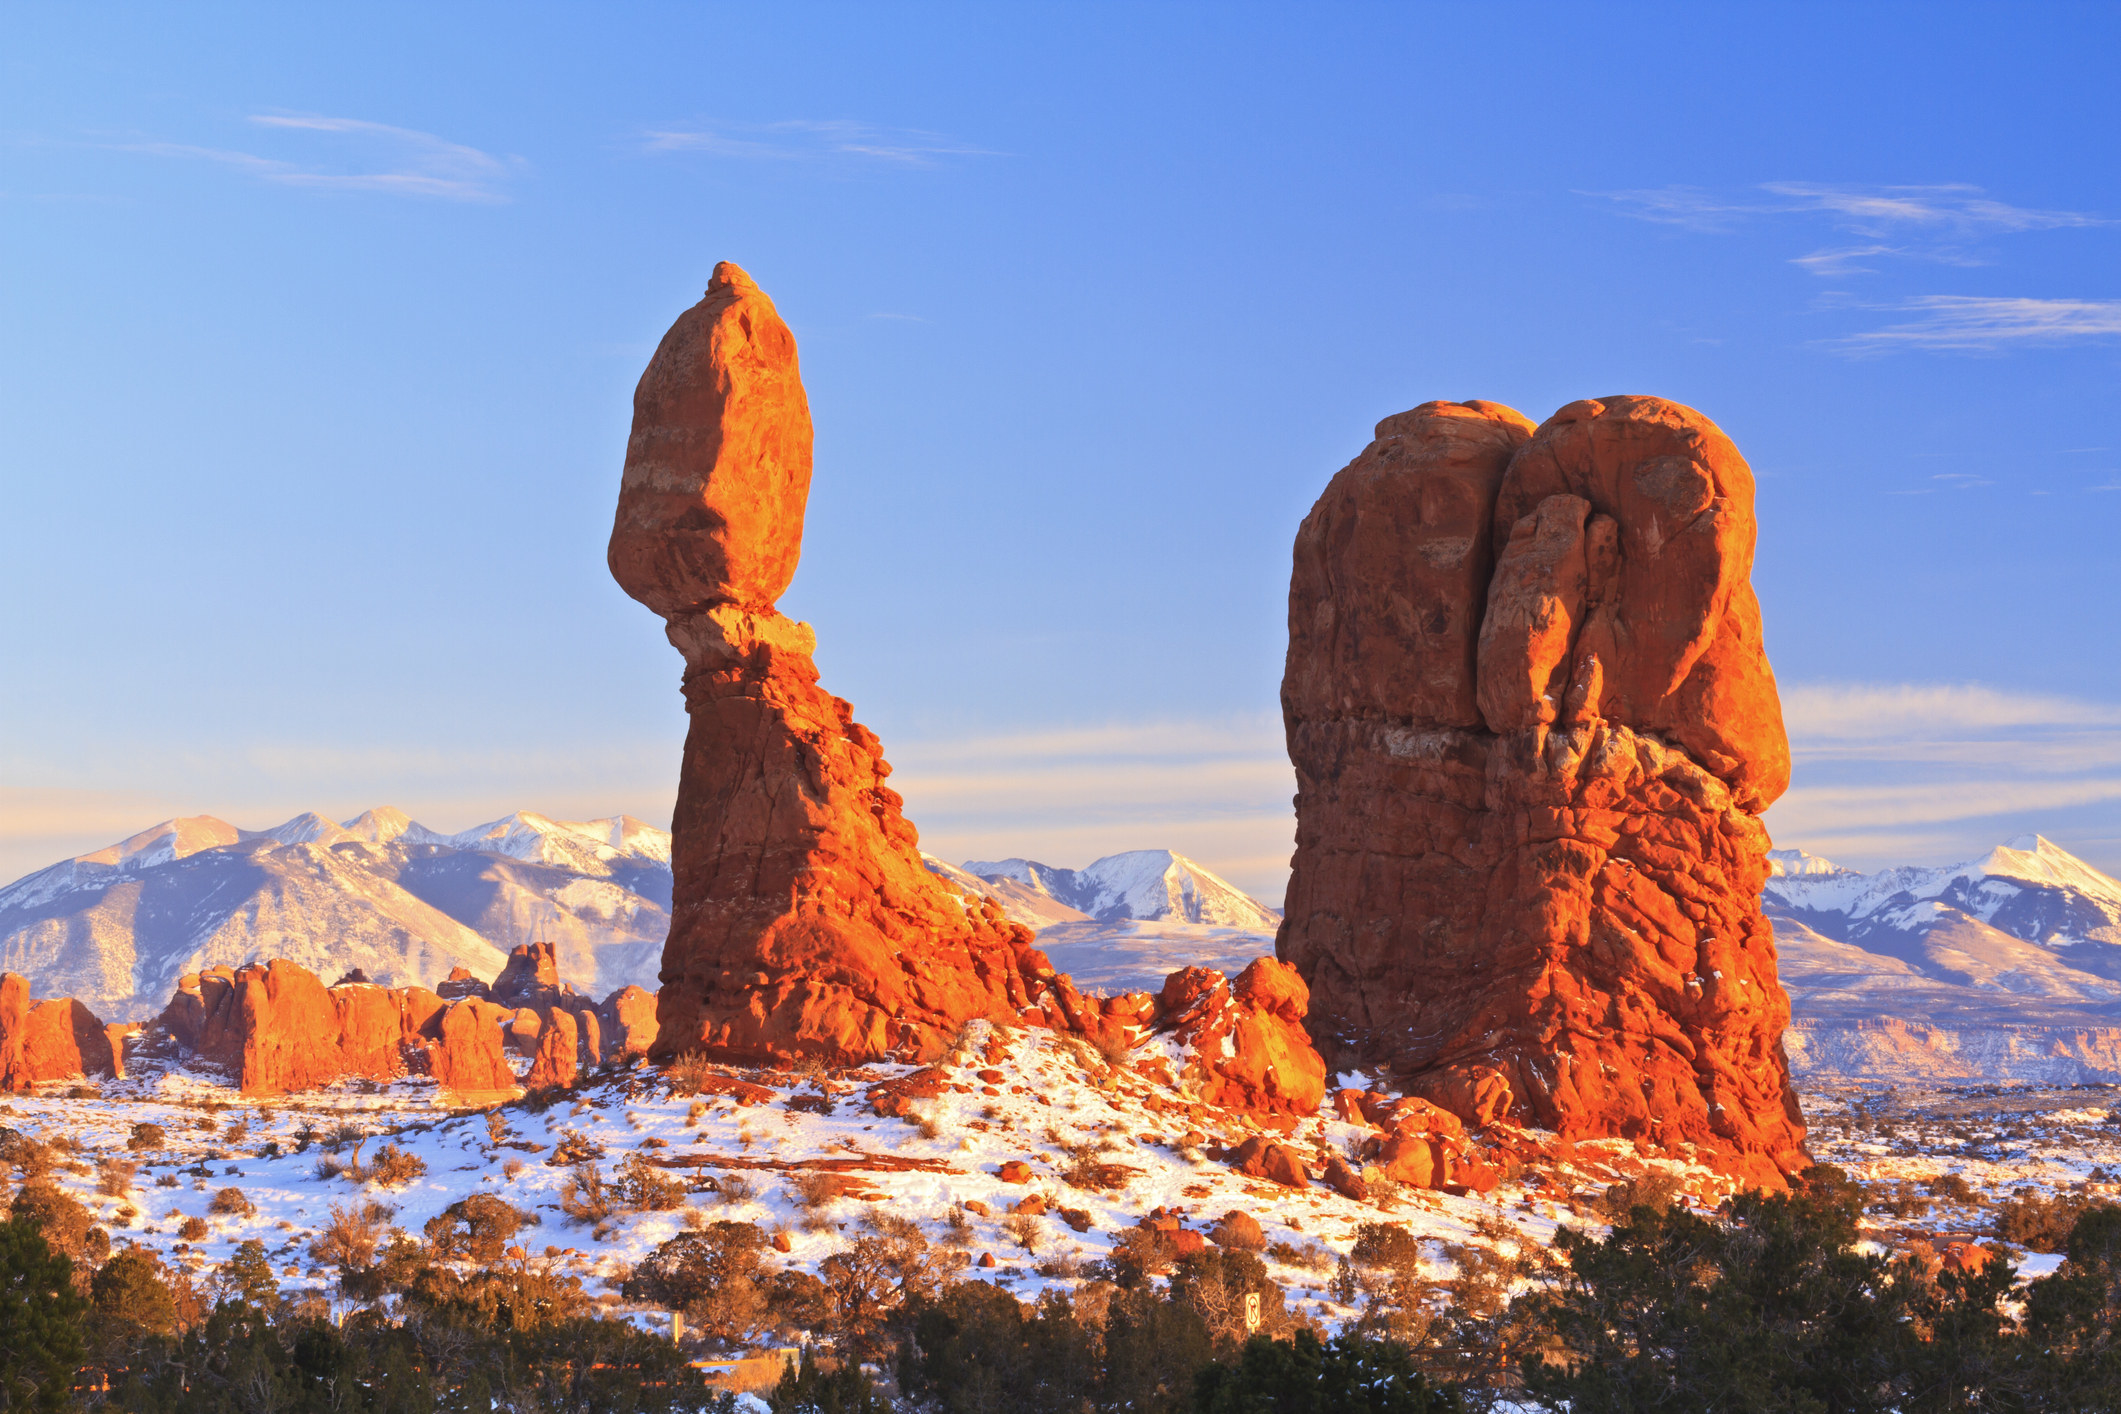 Light hits red rock spires in a snowy open space